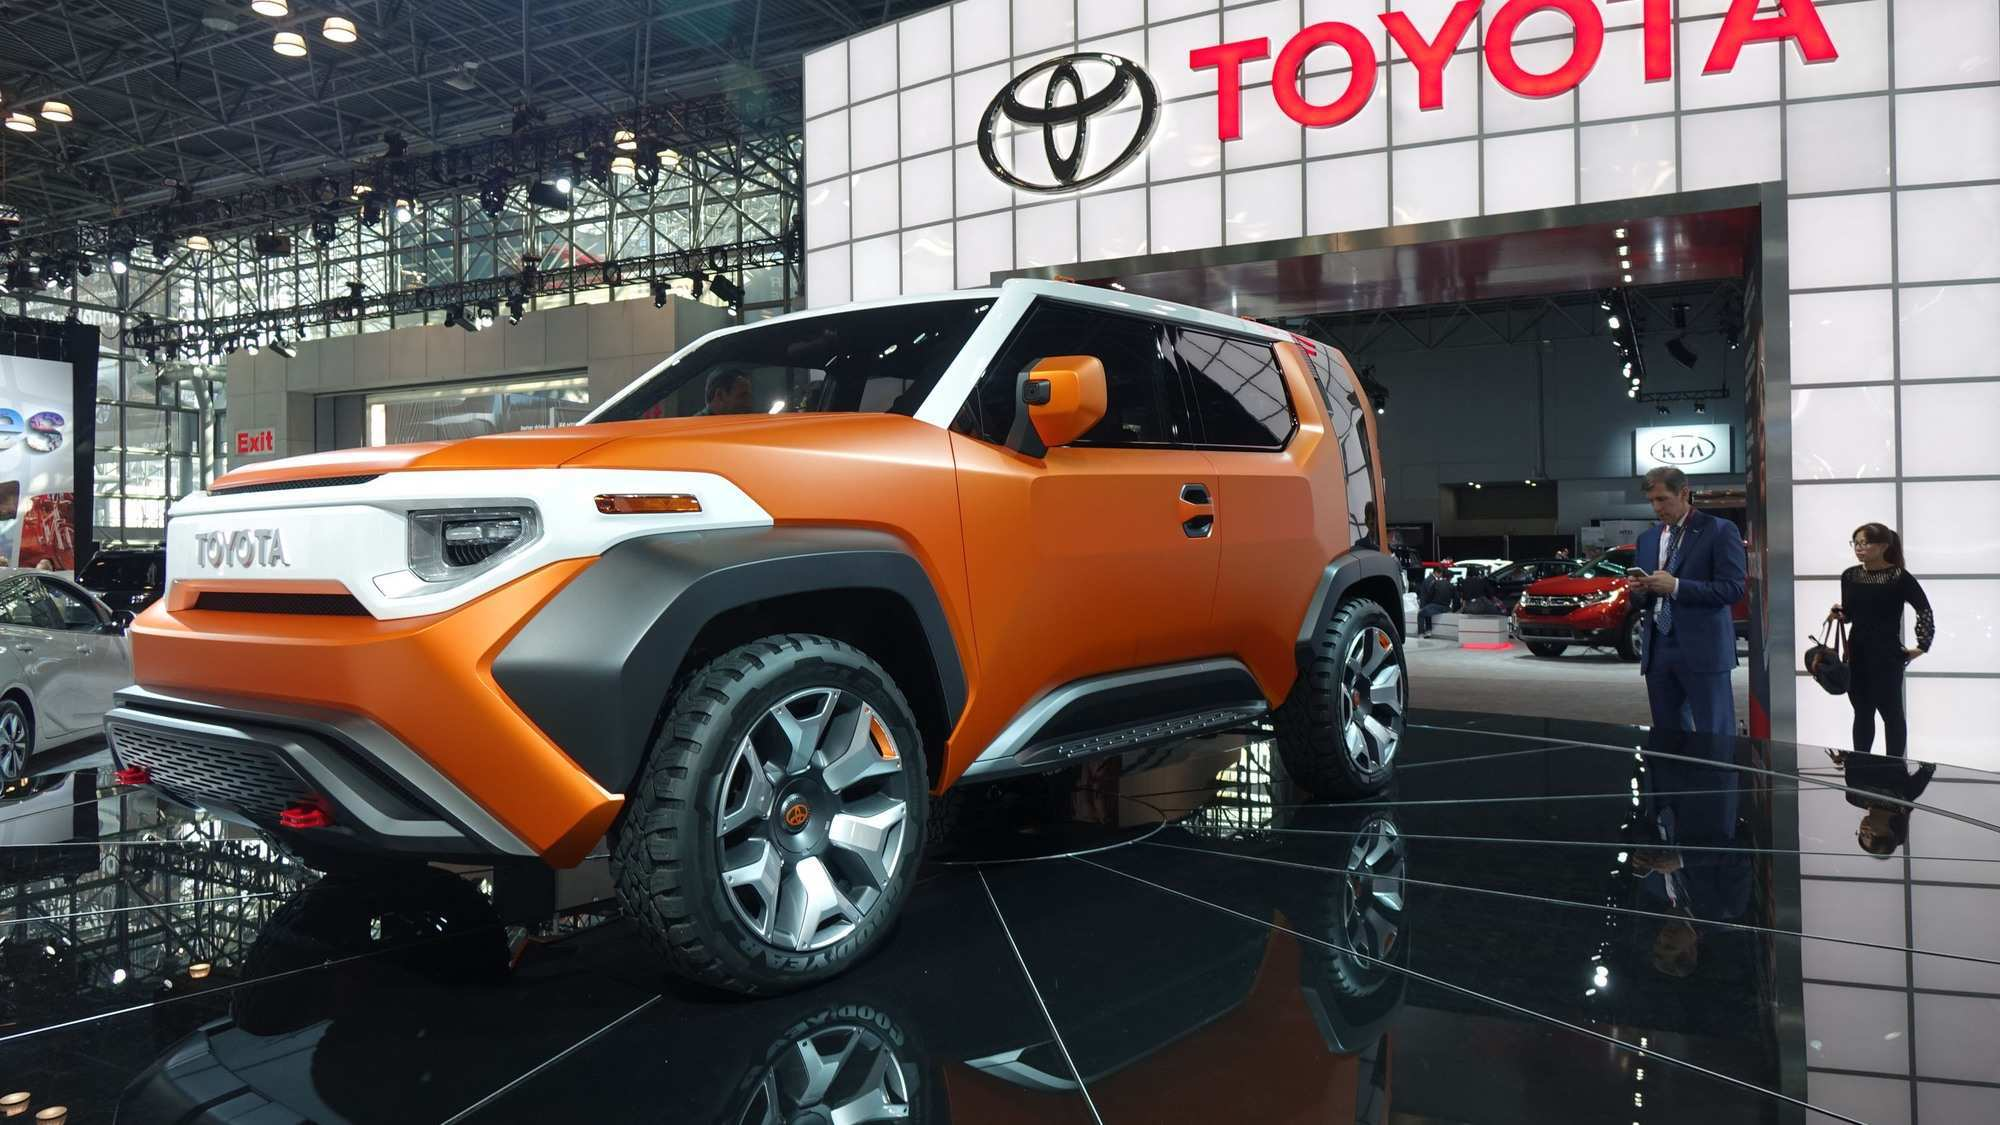 44 New Toyota Land Cruiser New New Concept 2020 Prices by Toyota Land Cruiser New New Concept 2020